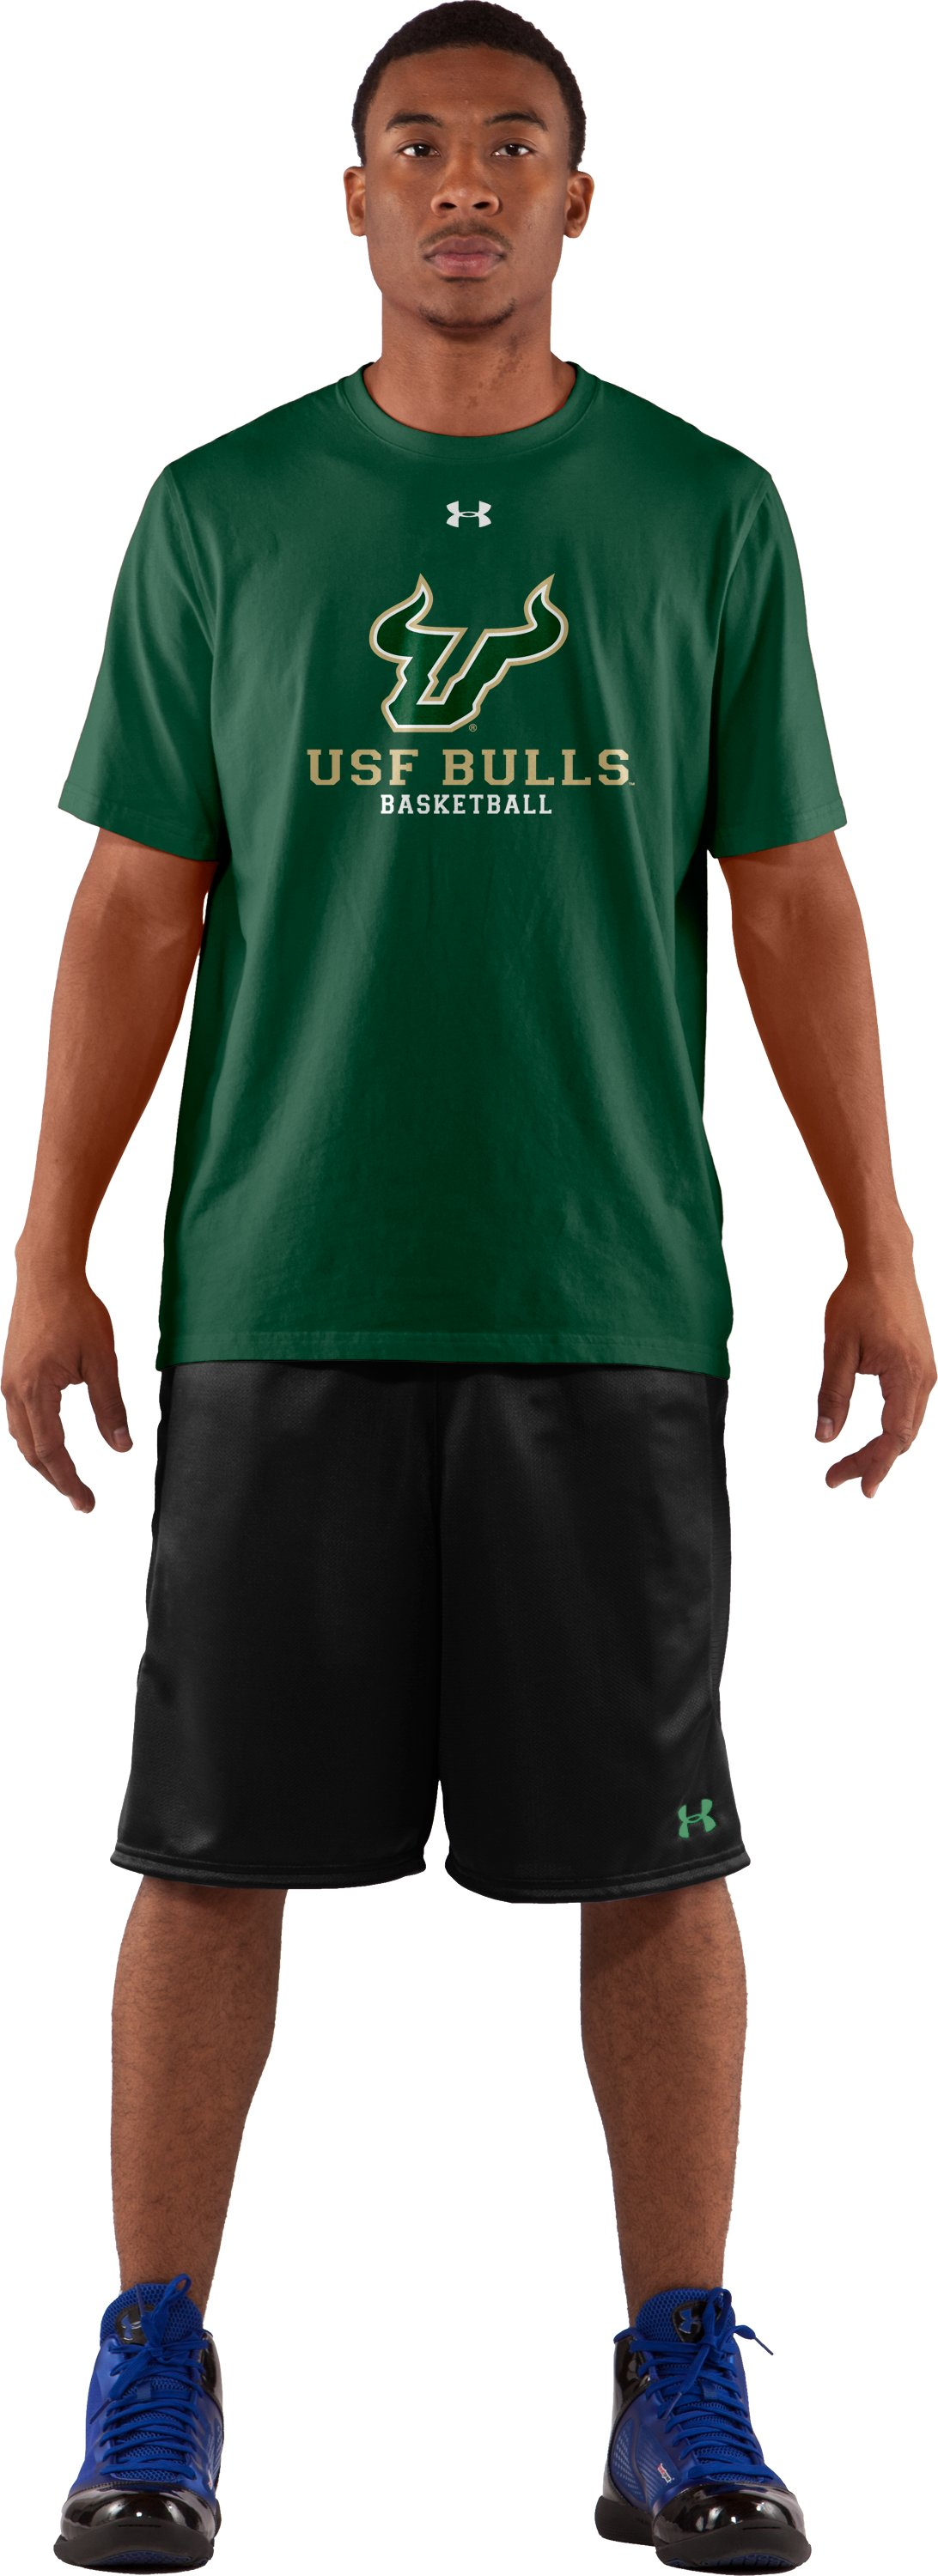 Men's USF UA T-Shirt, Forest Green, Front